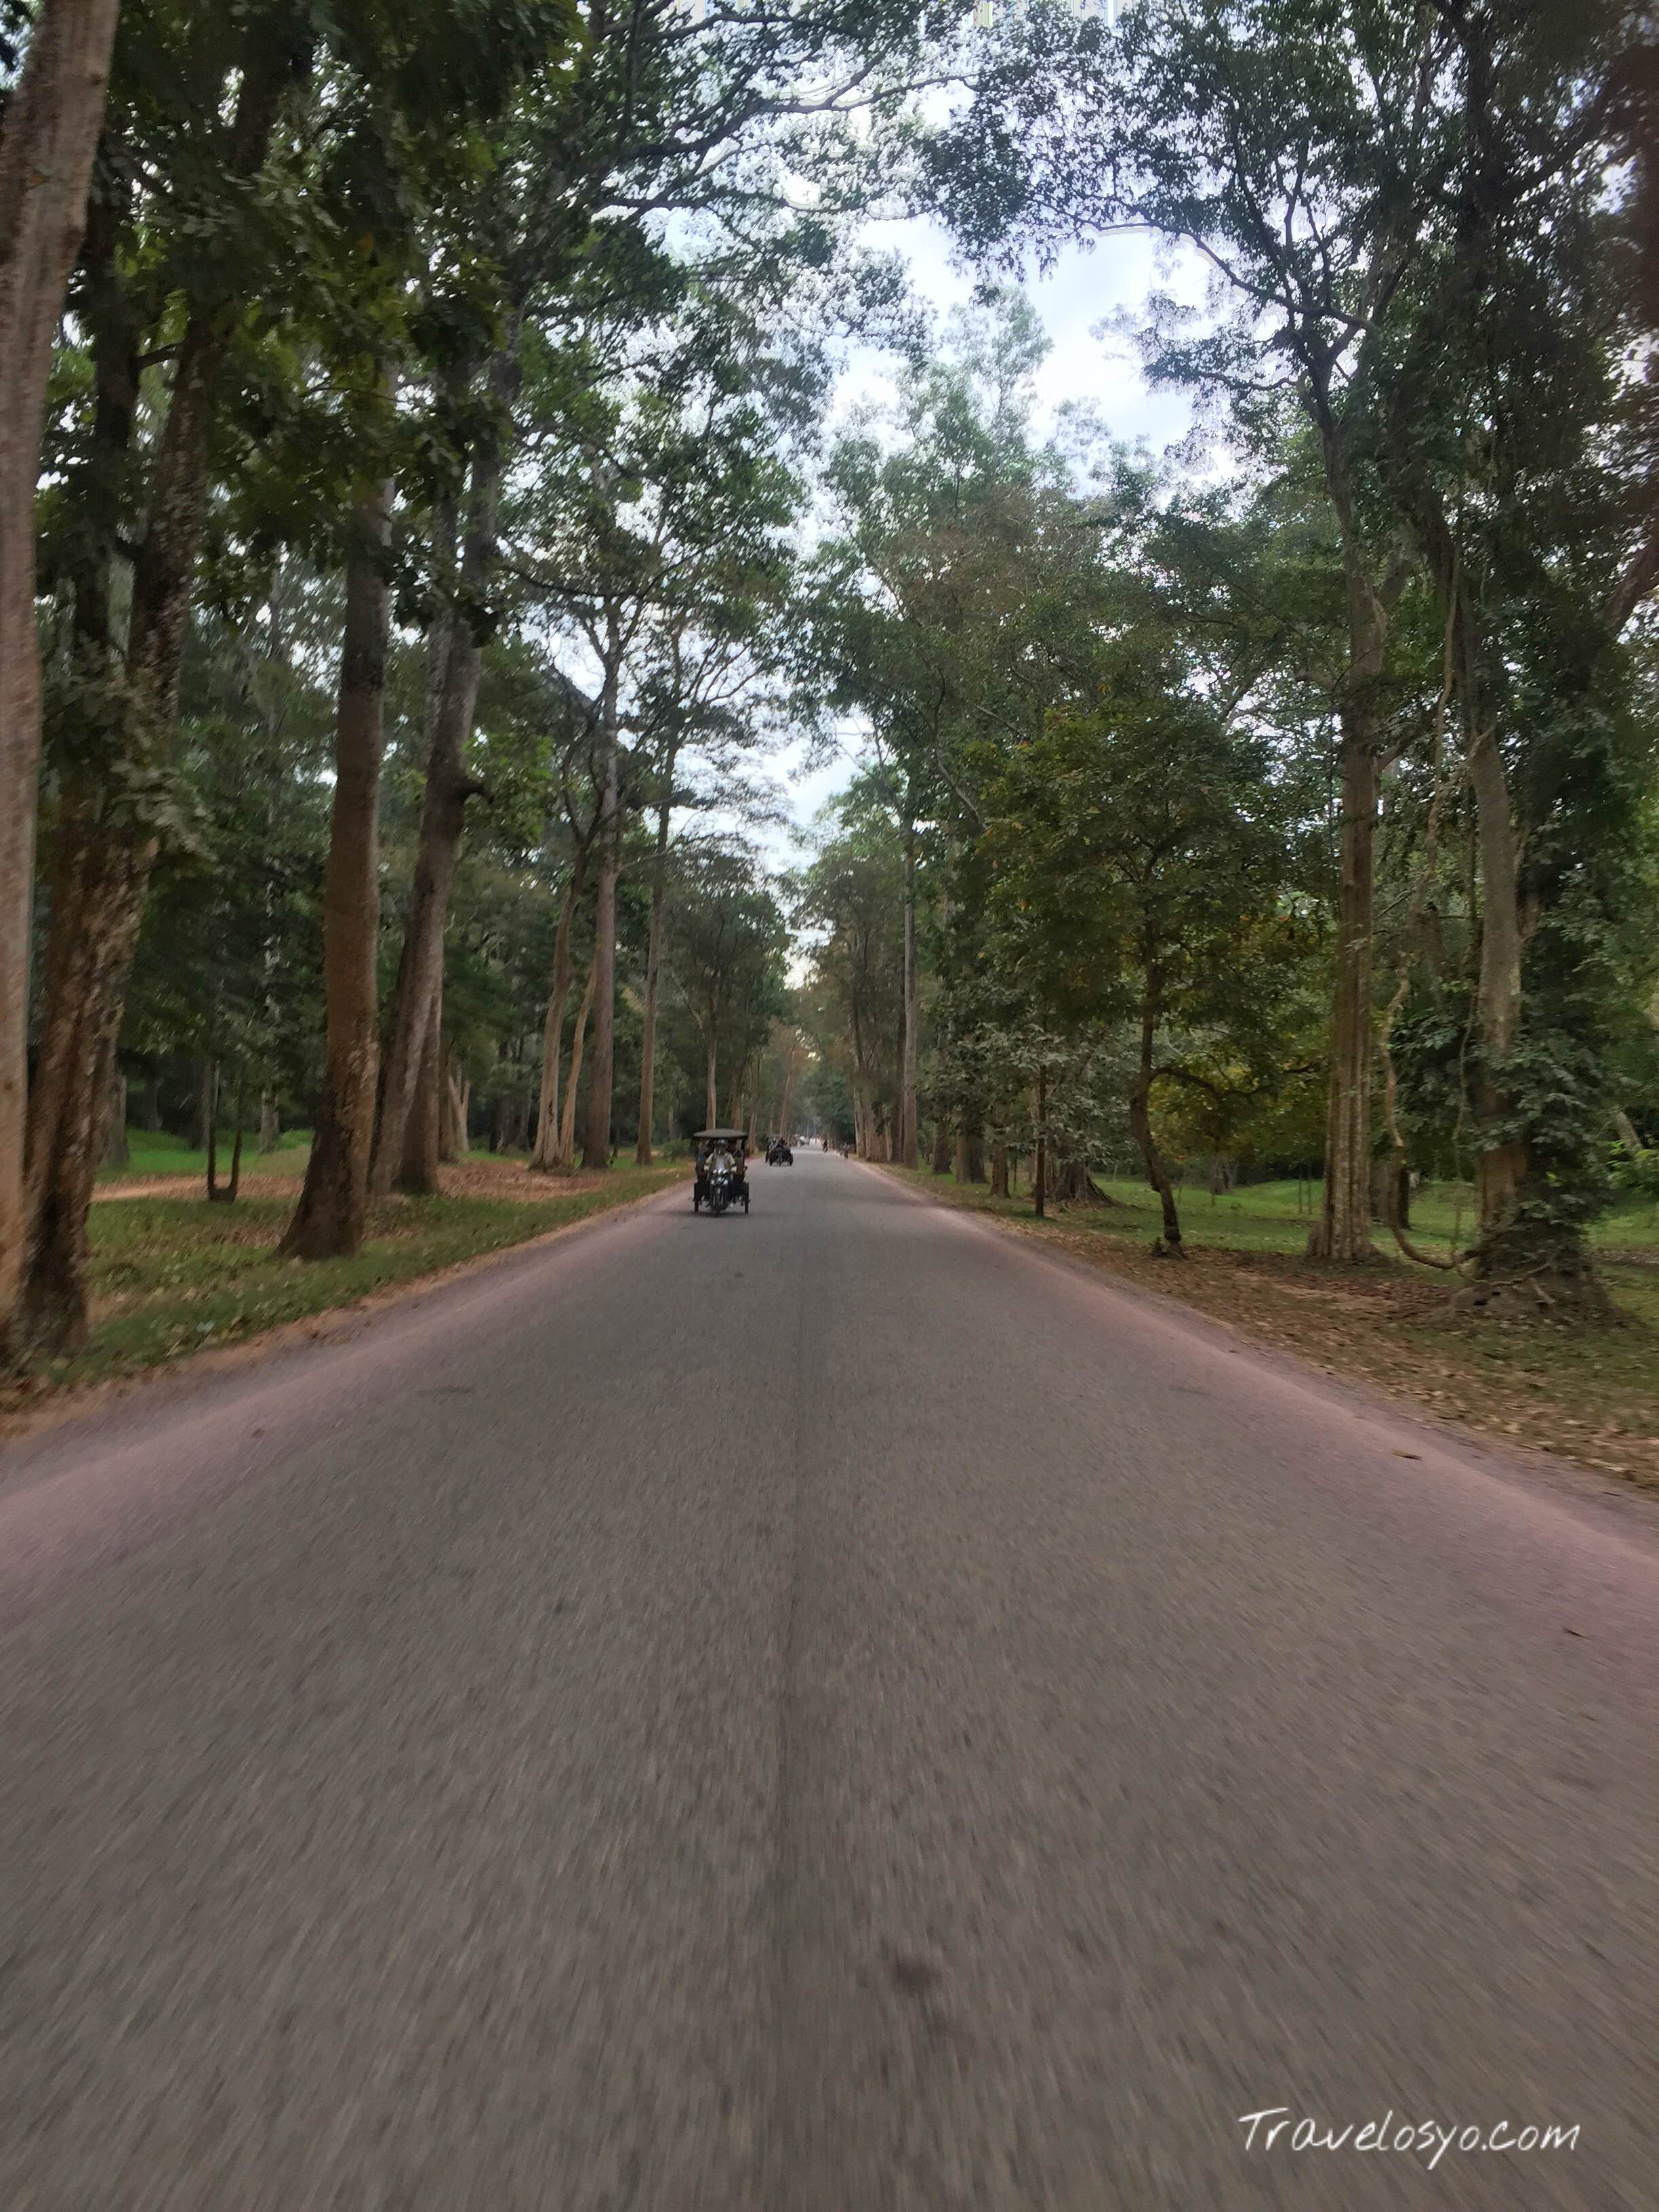 The Road of Siem Reap